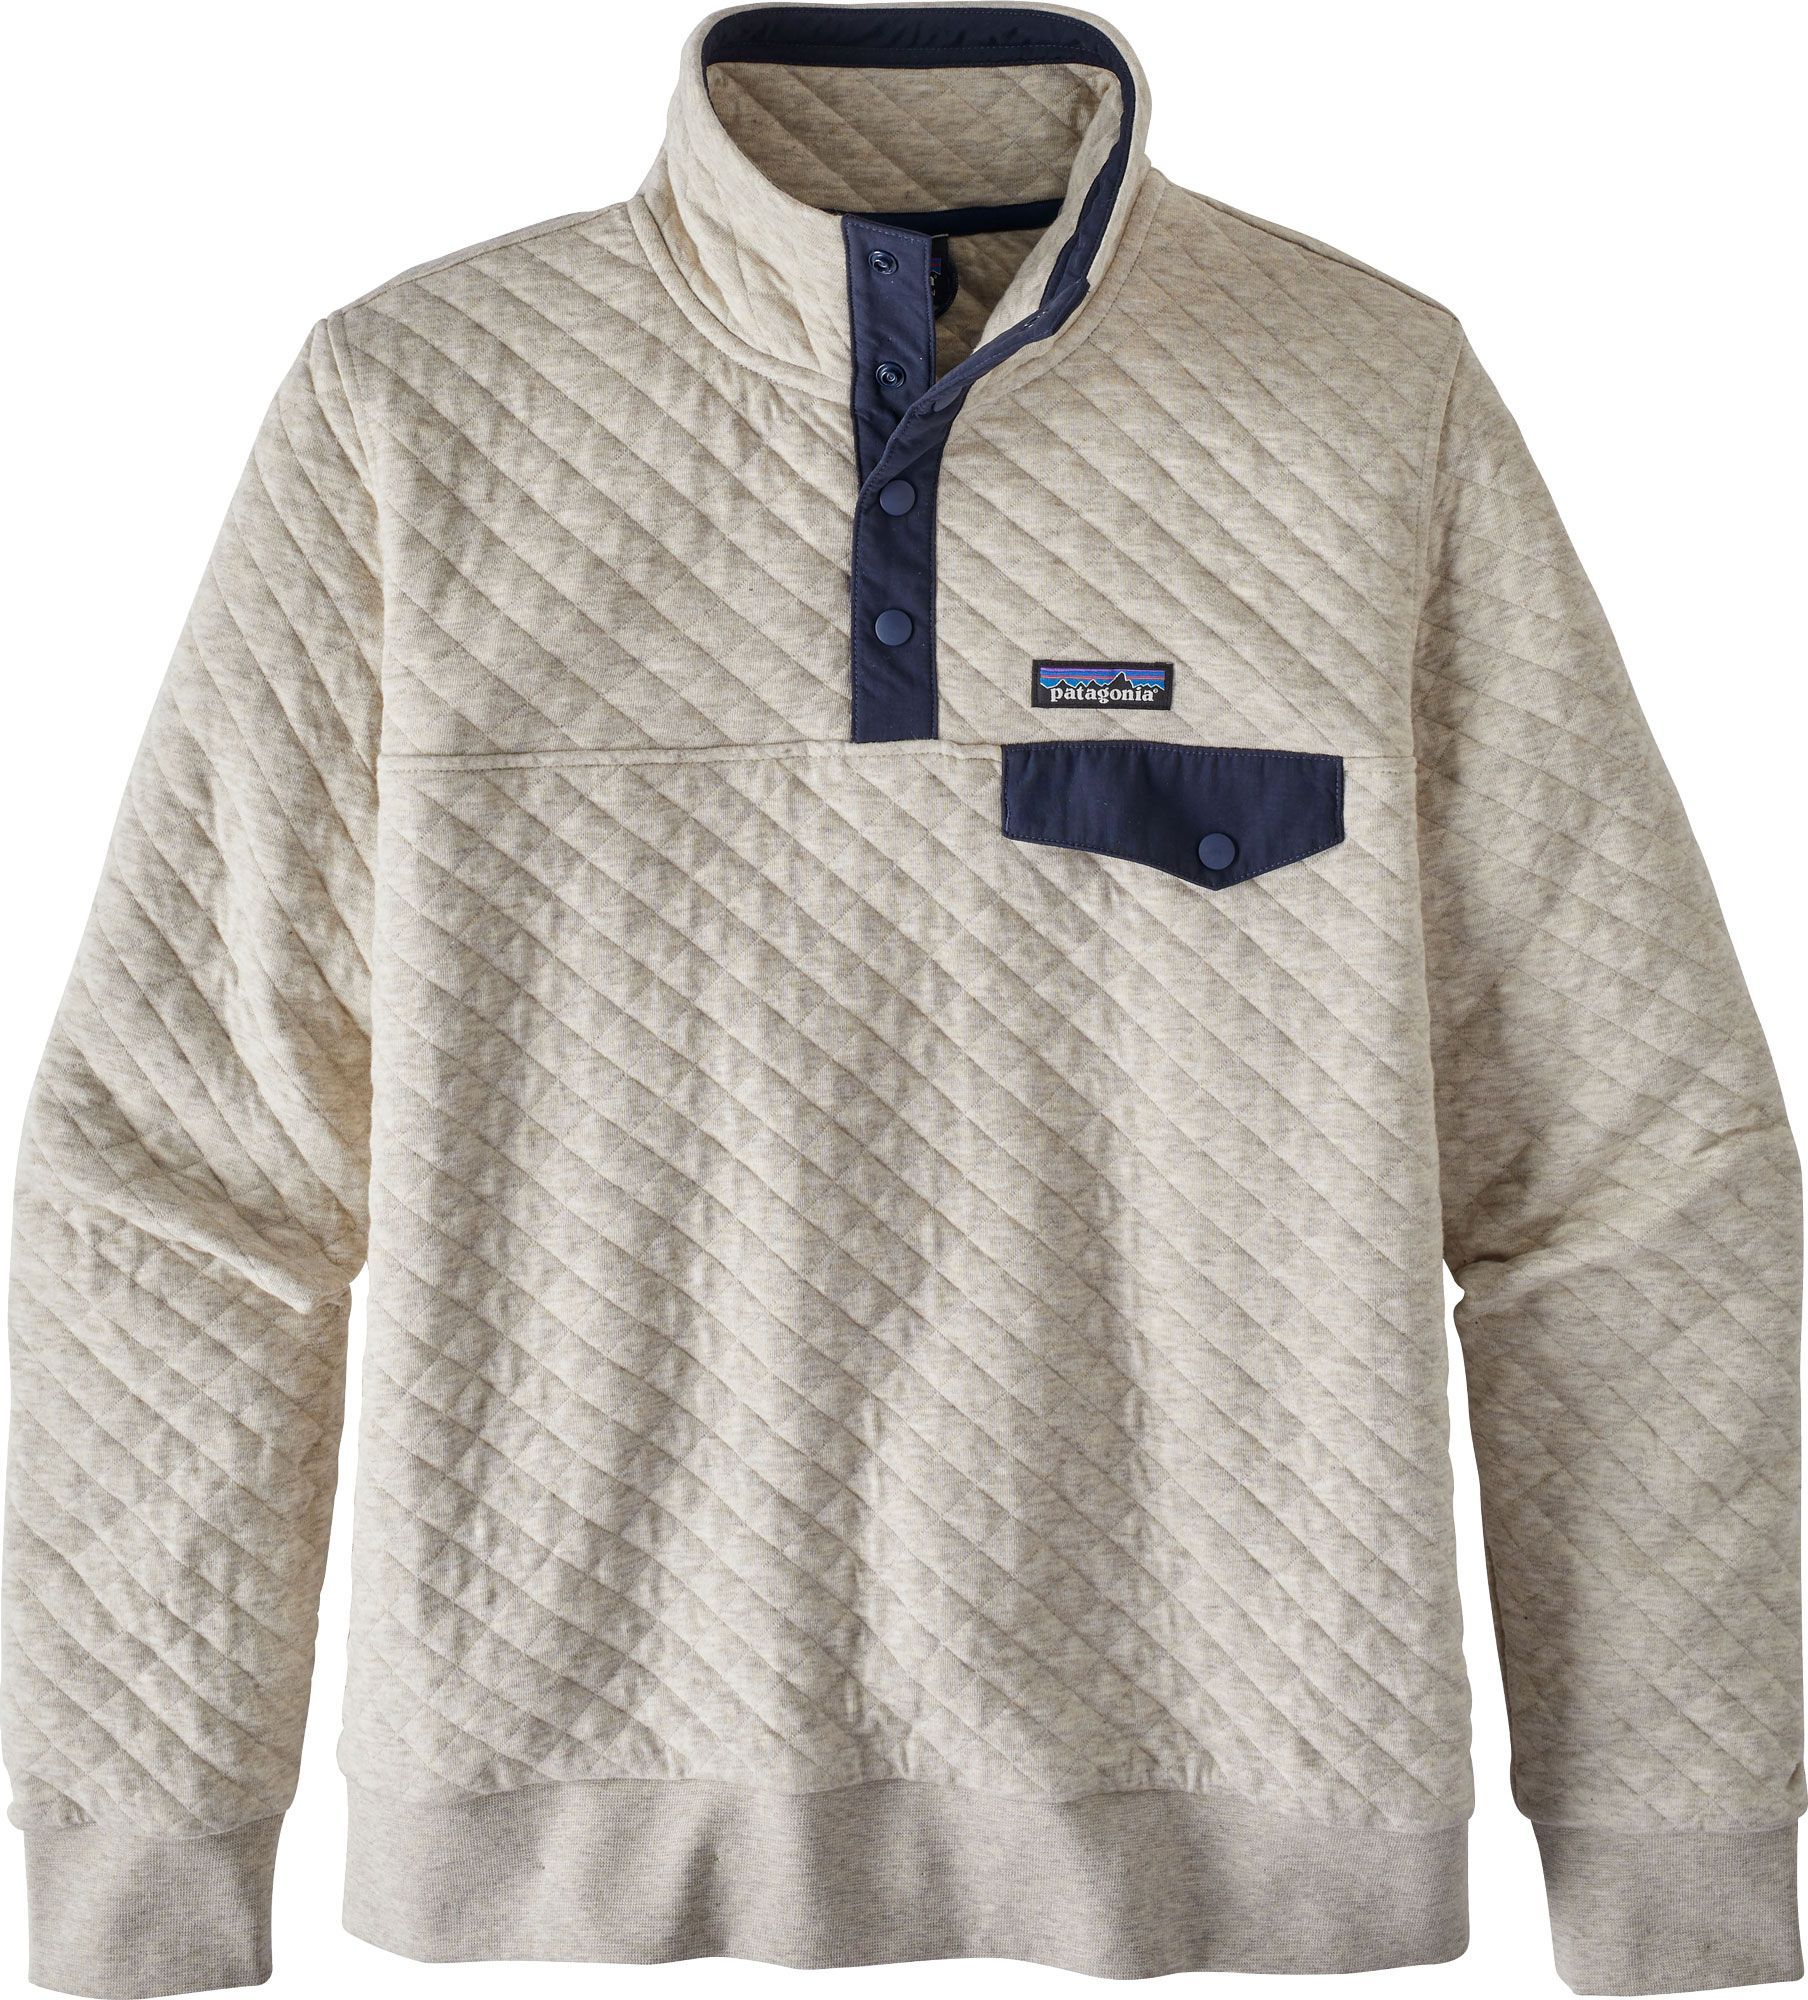 Patagonia Women S Cotton Quilt Snap T Pullover Size Xs